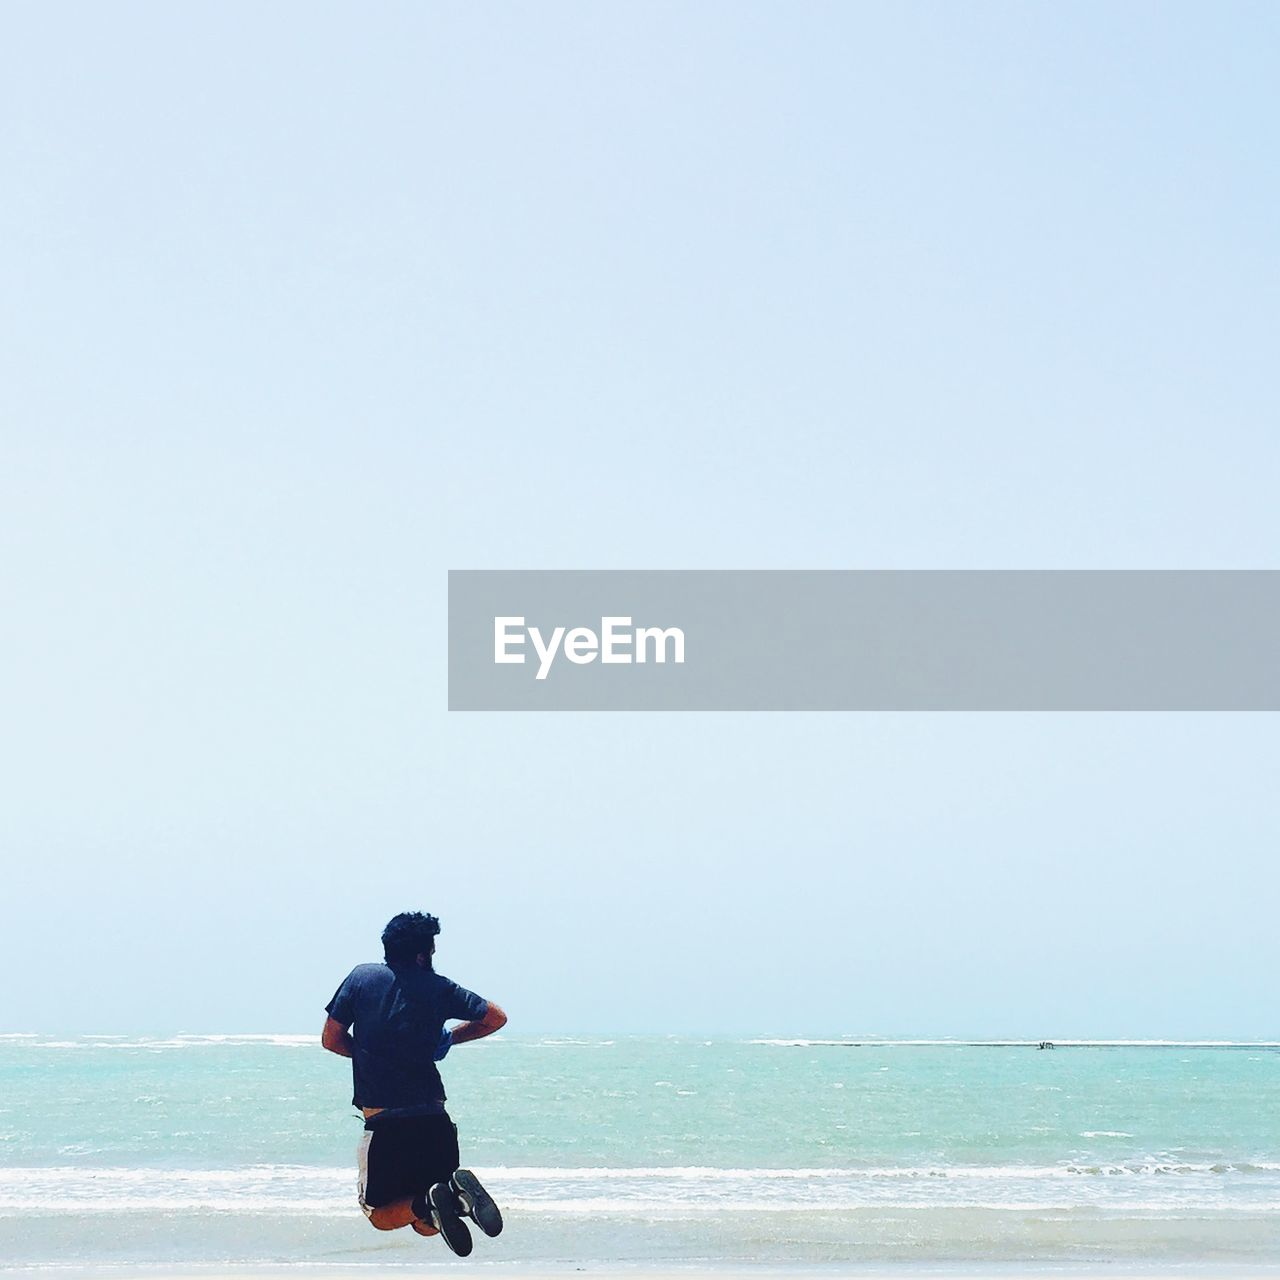 sea, water, real people, horizon over water, copy space, one person, clear sky, nature, leisure activity, lifestyles, scenics, beach, beauty in nature, outdoors, rear view, day, standing, men, tranquil scene, weekend activities, vacations, sky, tranquility, full length, young adult, adult, people